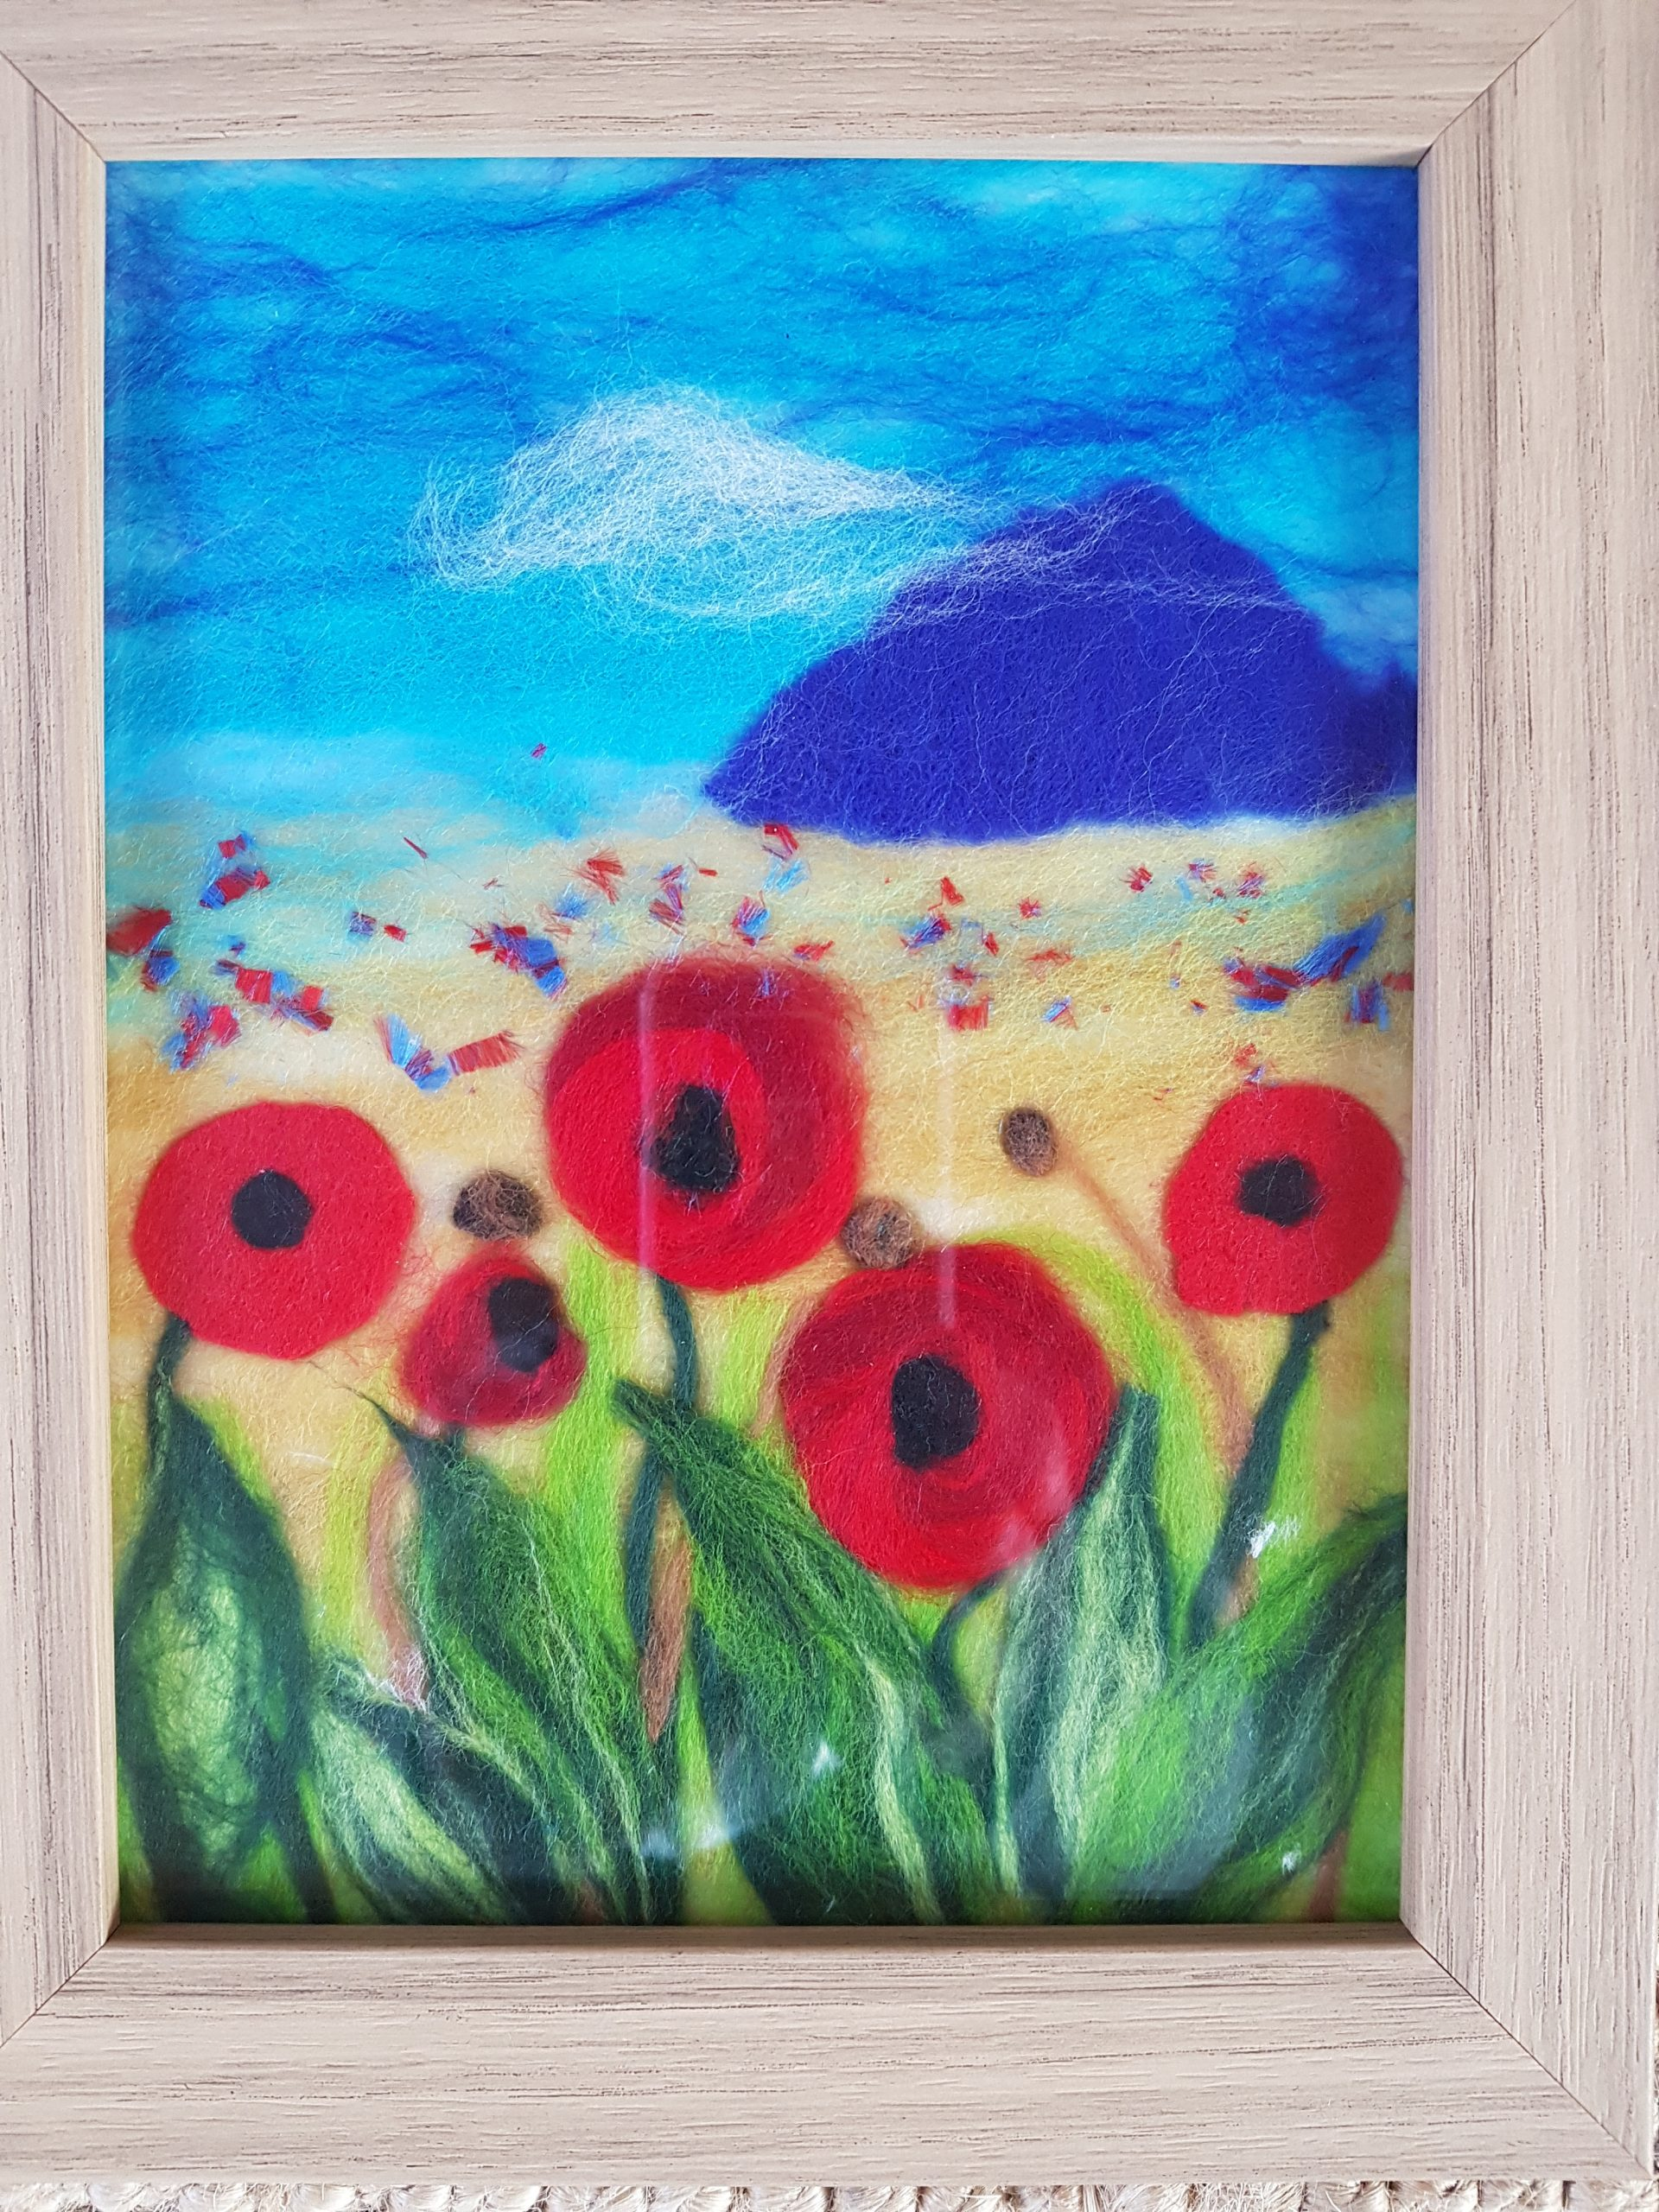 Wool painting created at online wool painting therapeutic art course